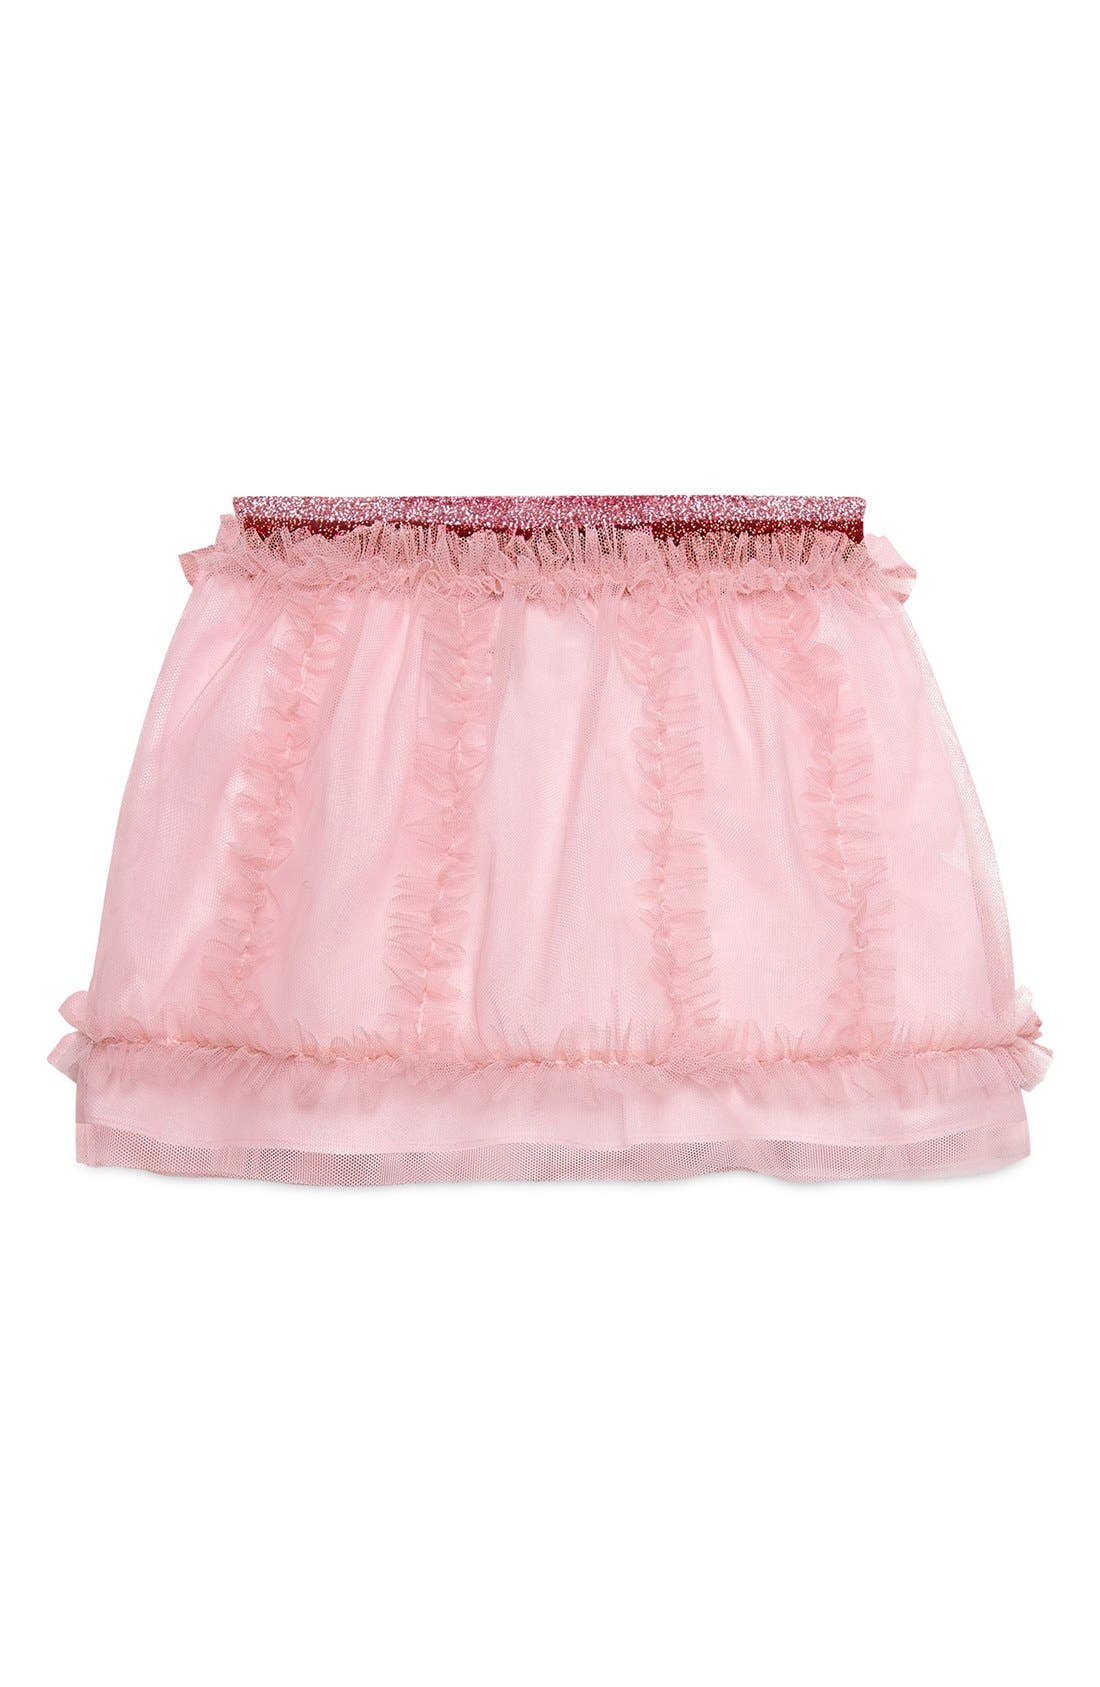 GUCCI Ruffle Accent Skirt